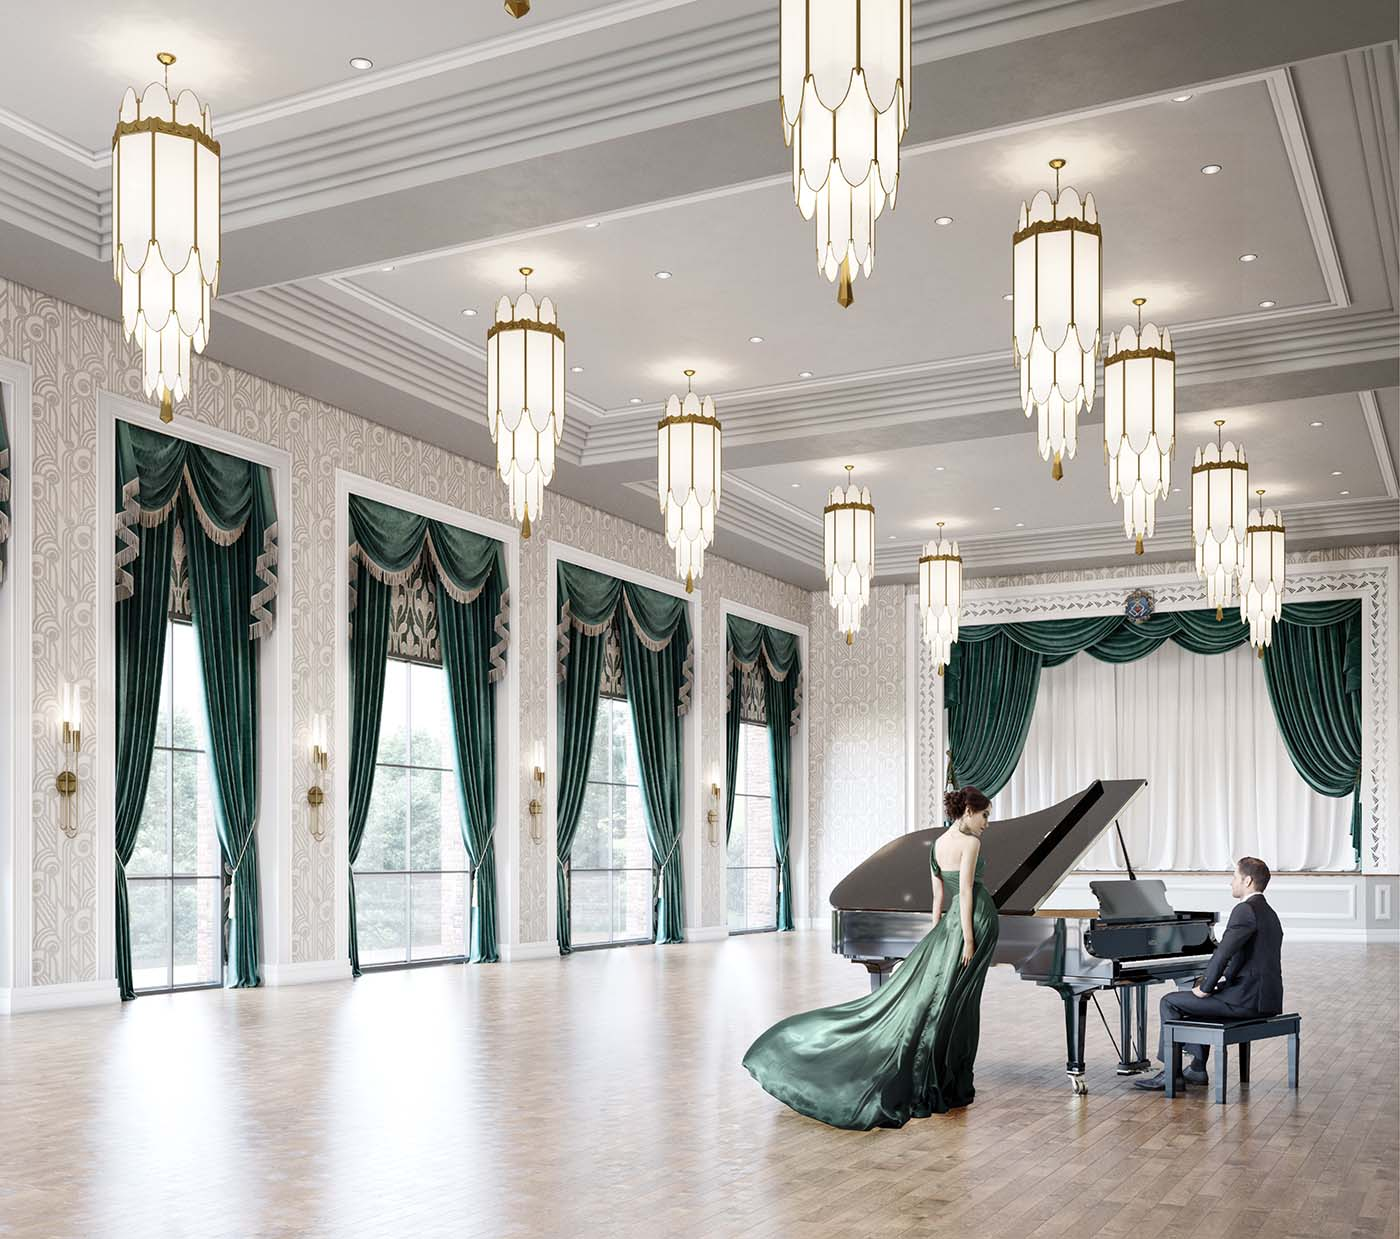 Green and white function and ballroom of a retirement village in Bowral with a lady wearing a green dress who performs next to a pianist.